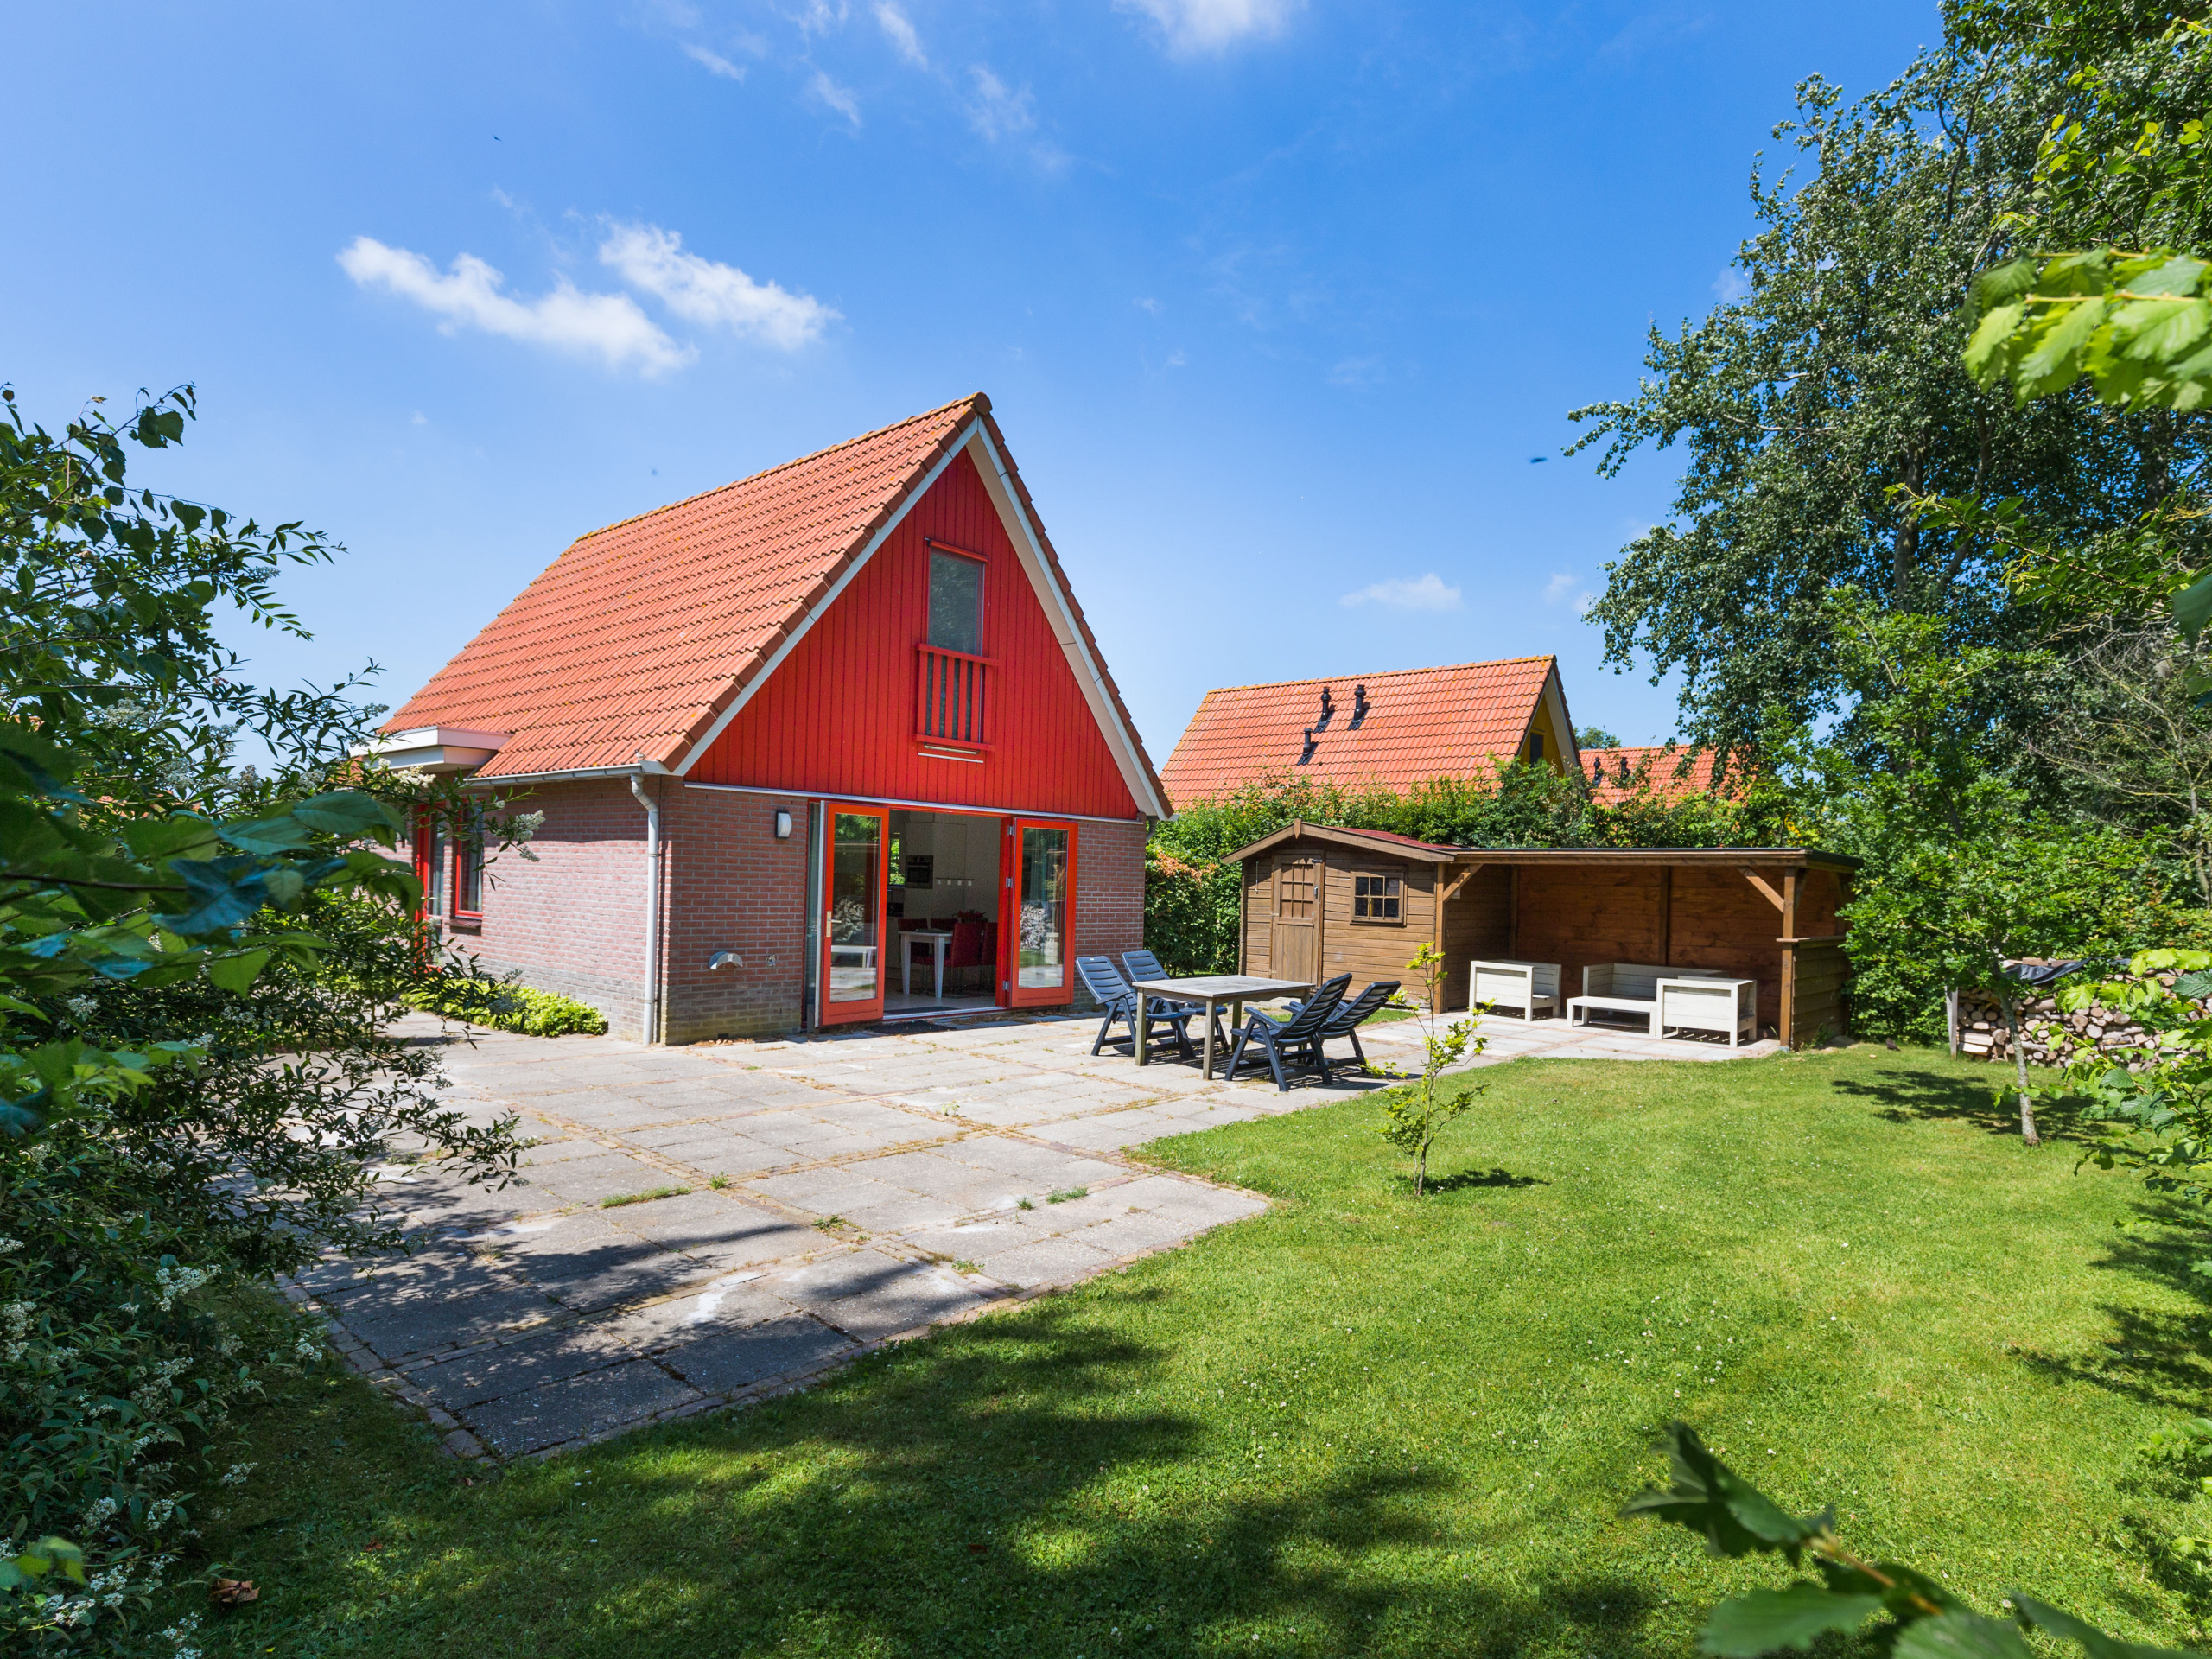 Detached holiday home by the Waddenzee, perfect for birdwatchers